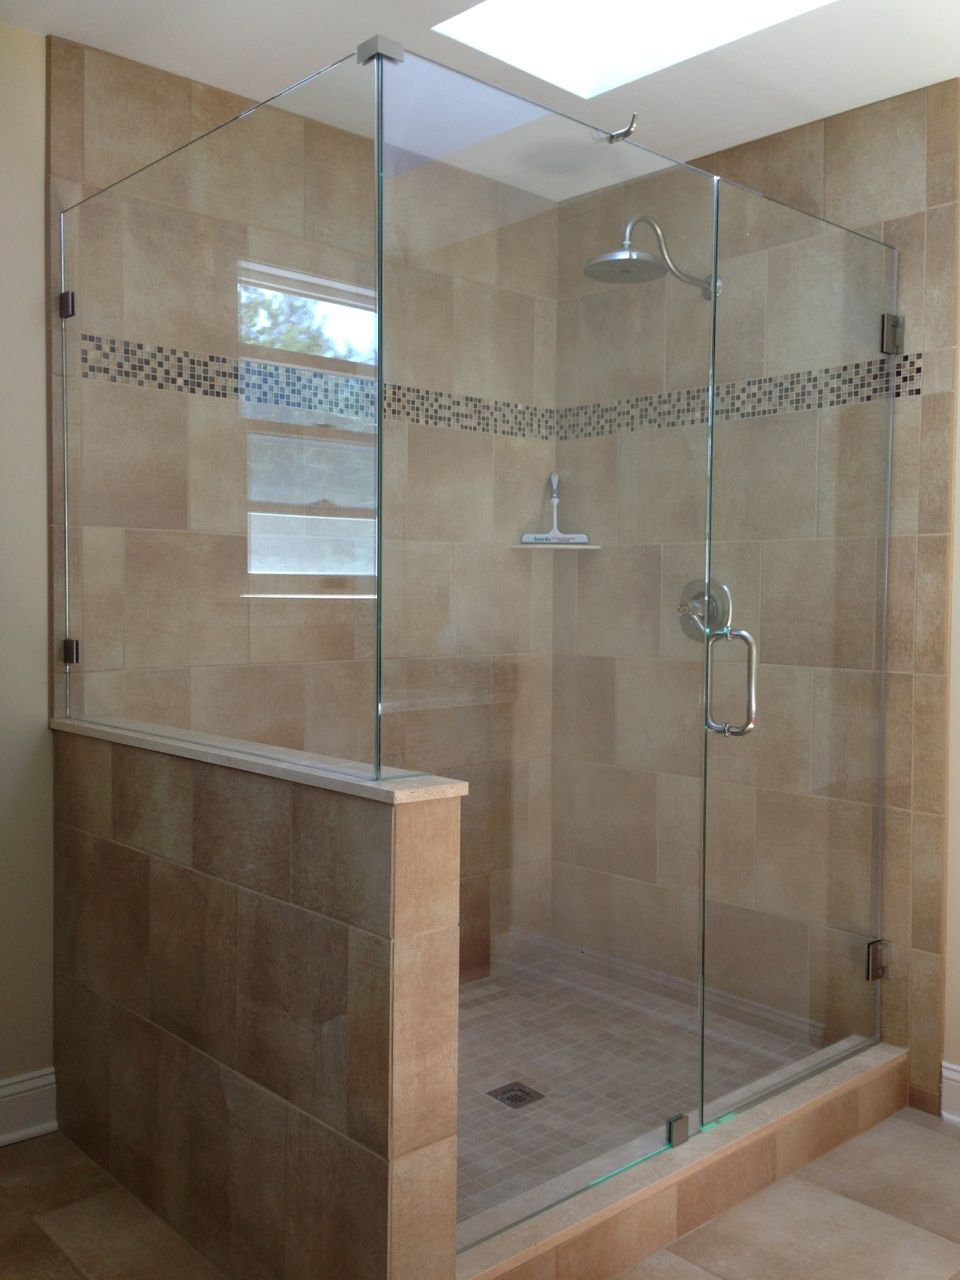 Do We Put A Half Wall Showerman Frameless Shower Door Frameless